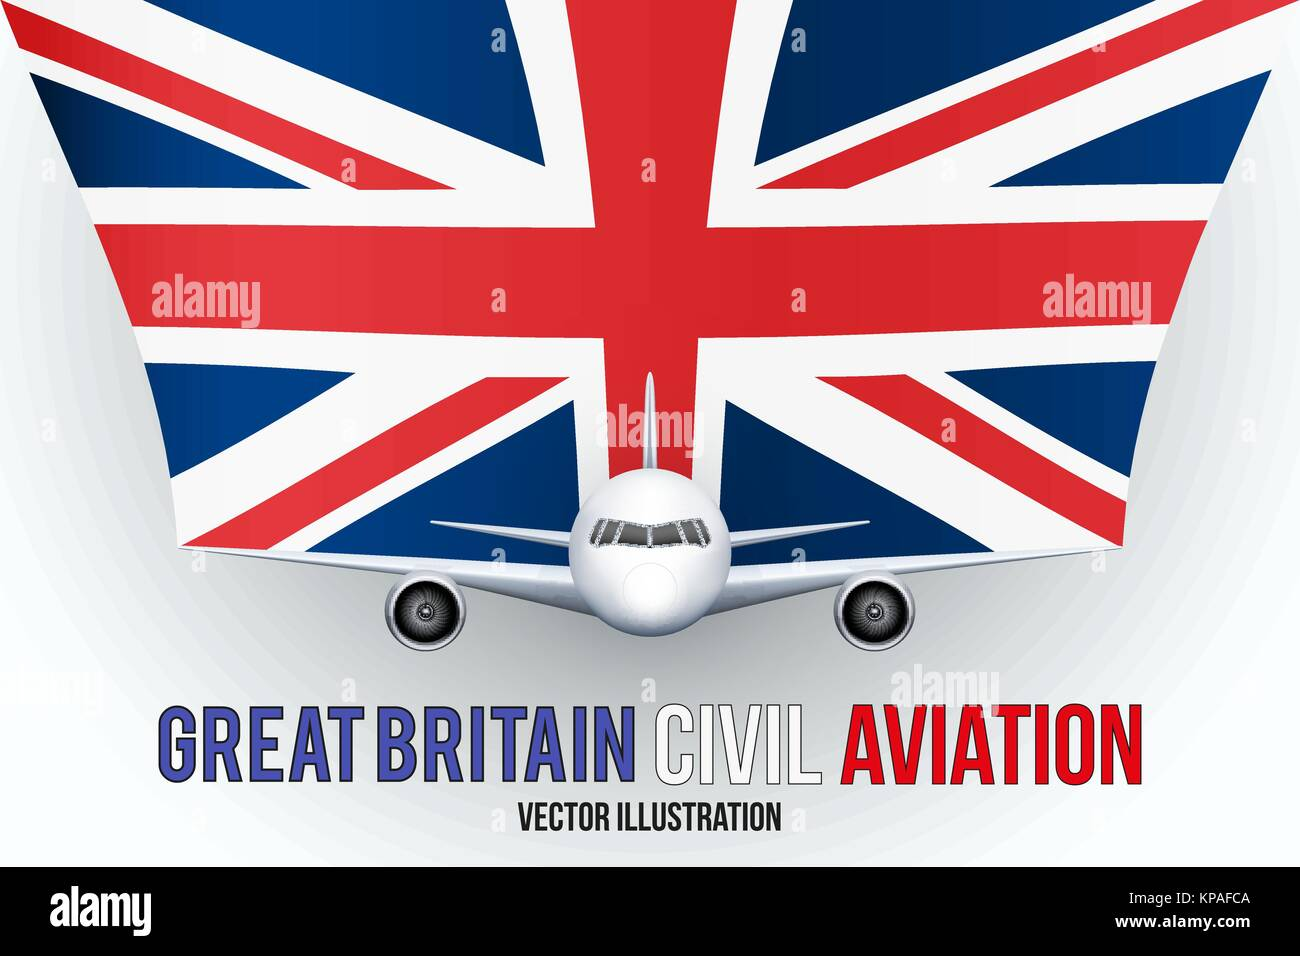 Civil Aircraft with flag - Stock Image